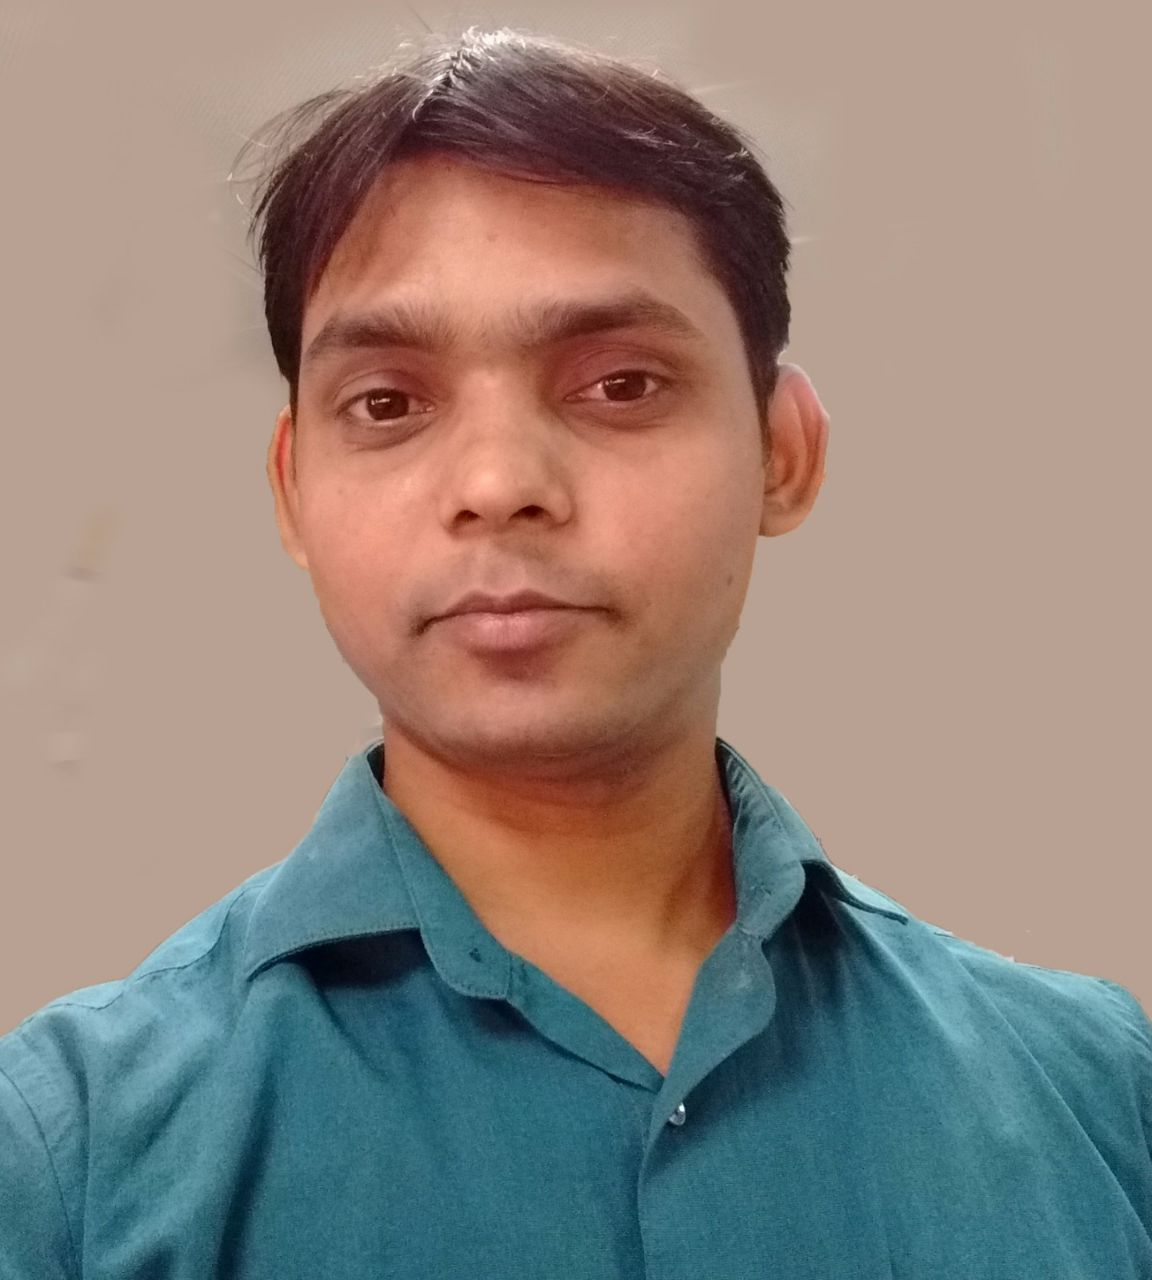 image of Shri Sandeep Kumar Patel Photo